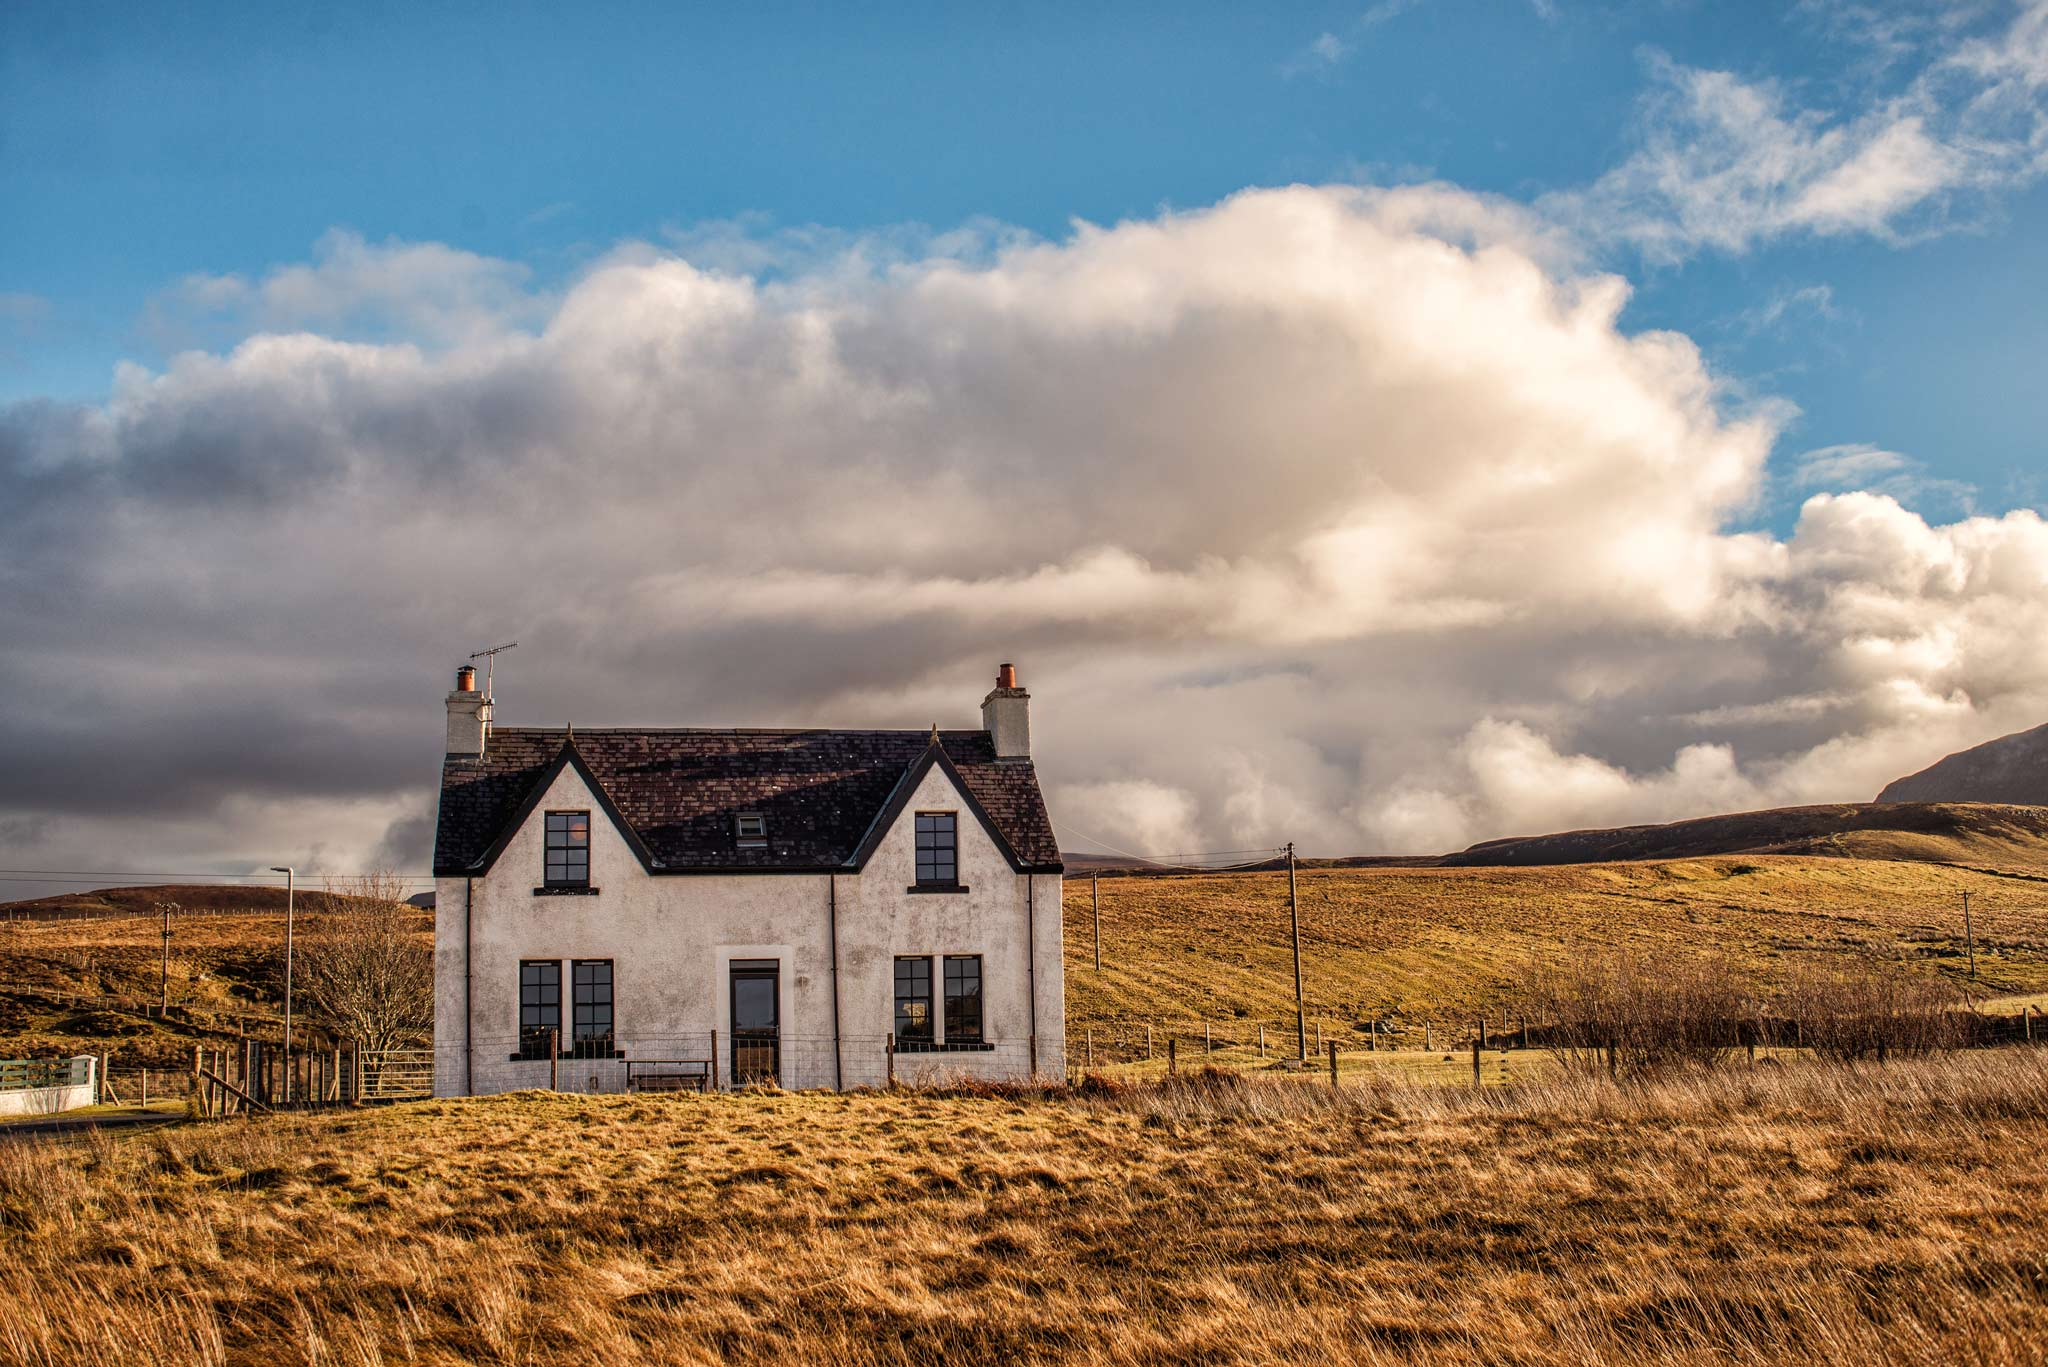 Airbnb  H ouse at Kilmuir - Skye. Image © Dean Wright Photography